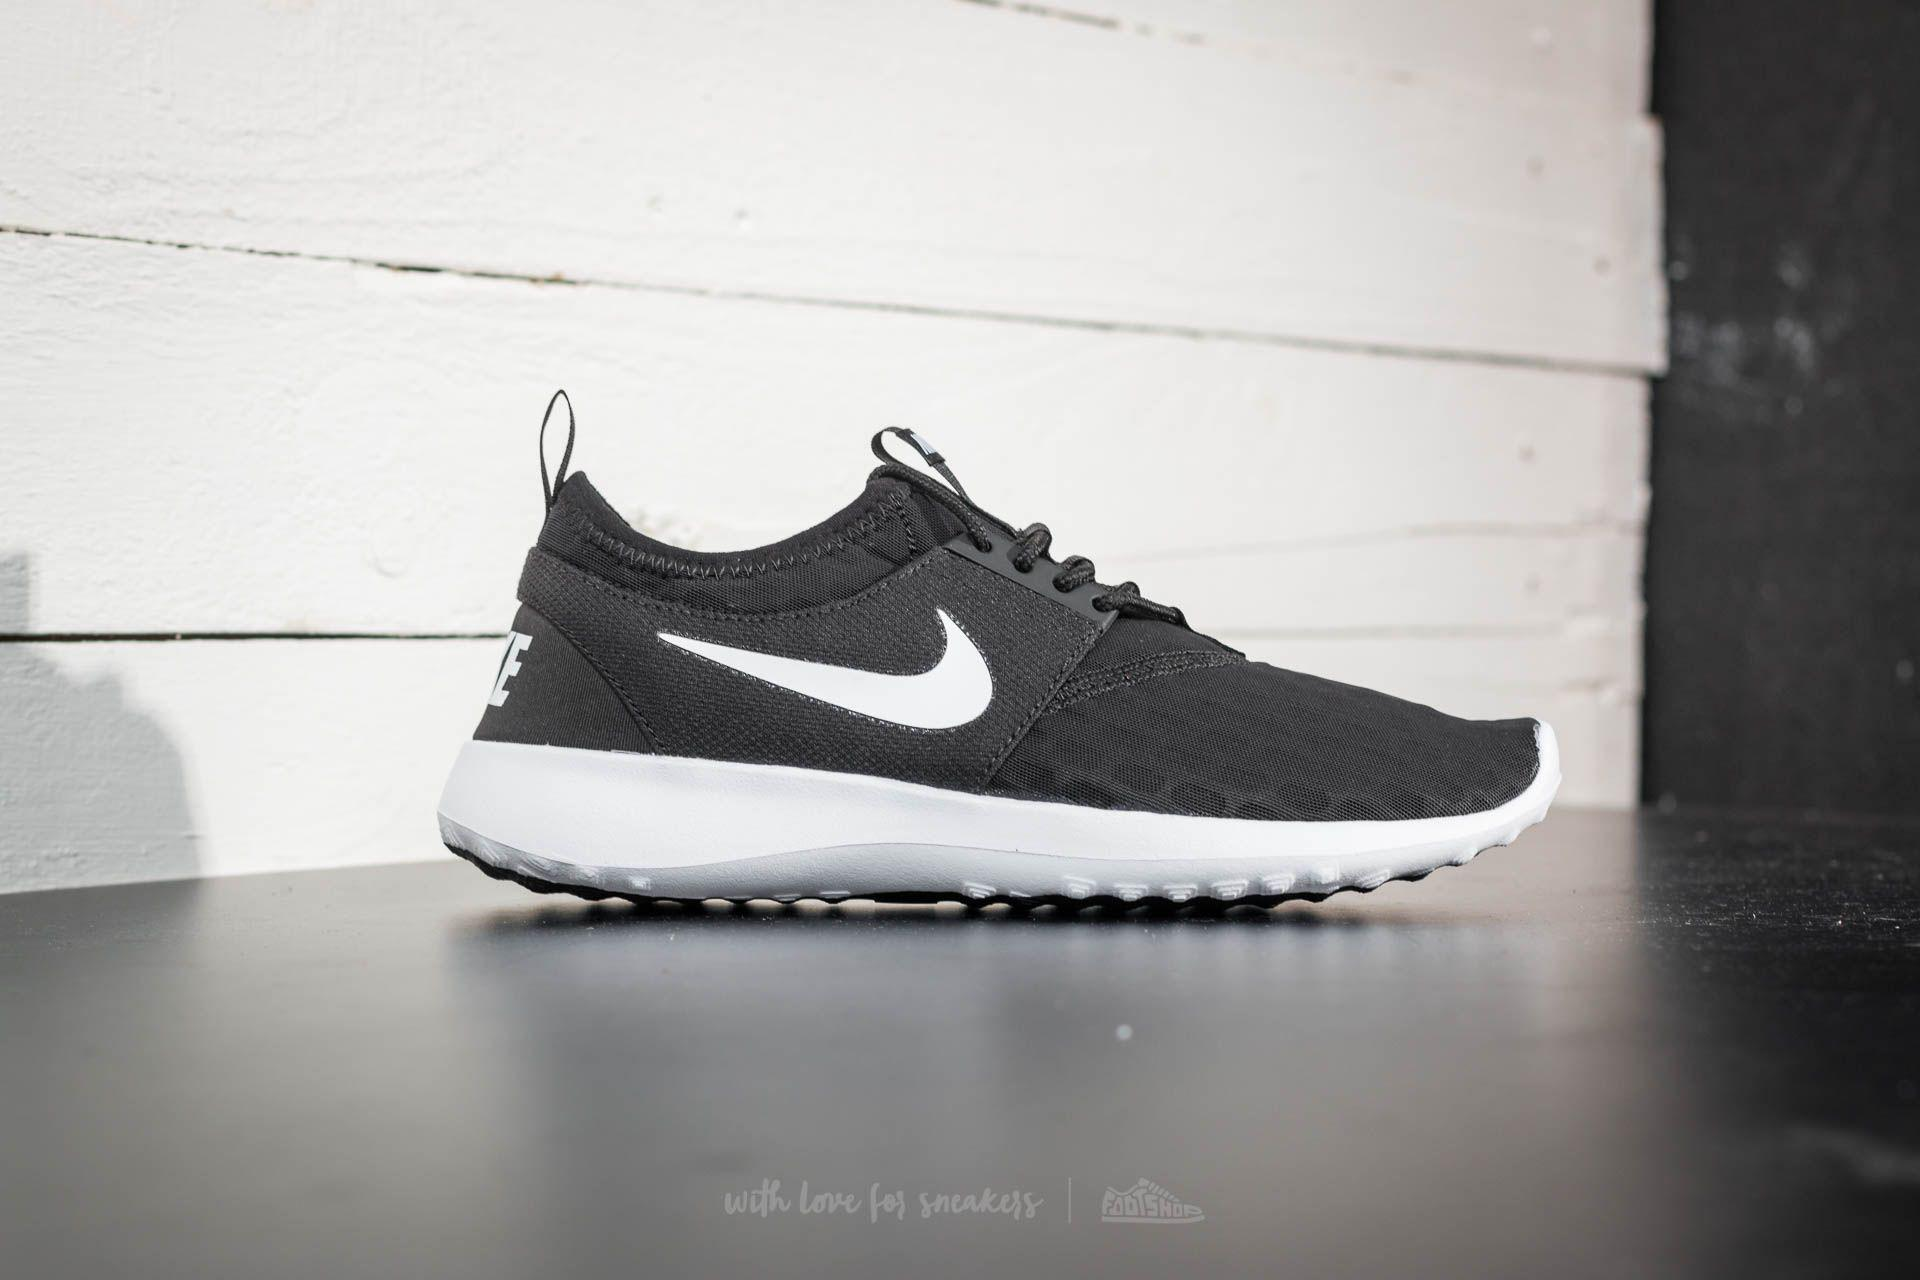 9102f6889e57 Lyst - Nike Wmns Juvenate Black  White-black-white in Black